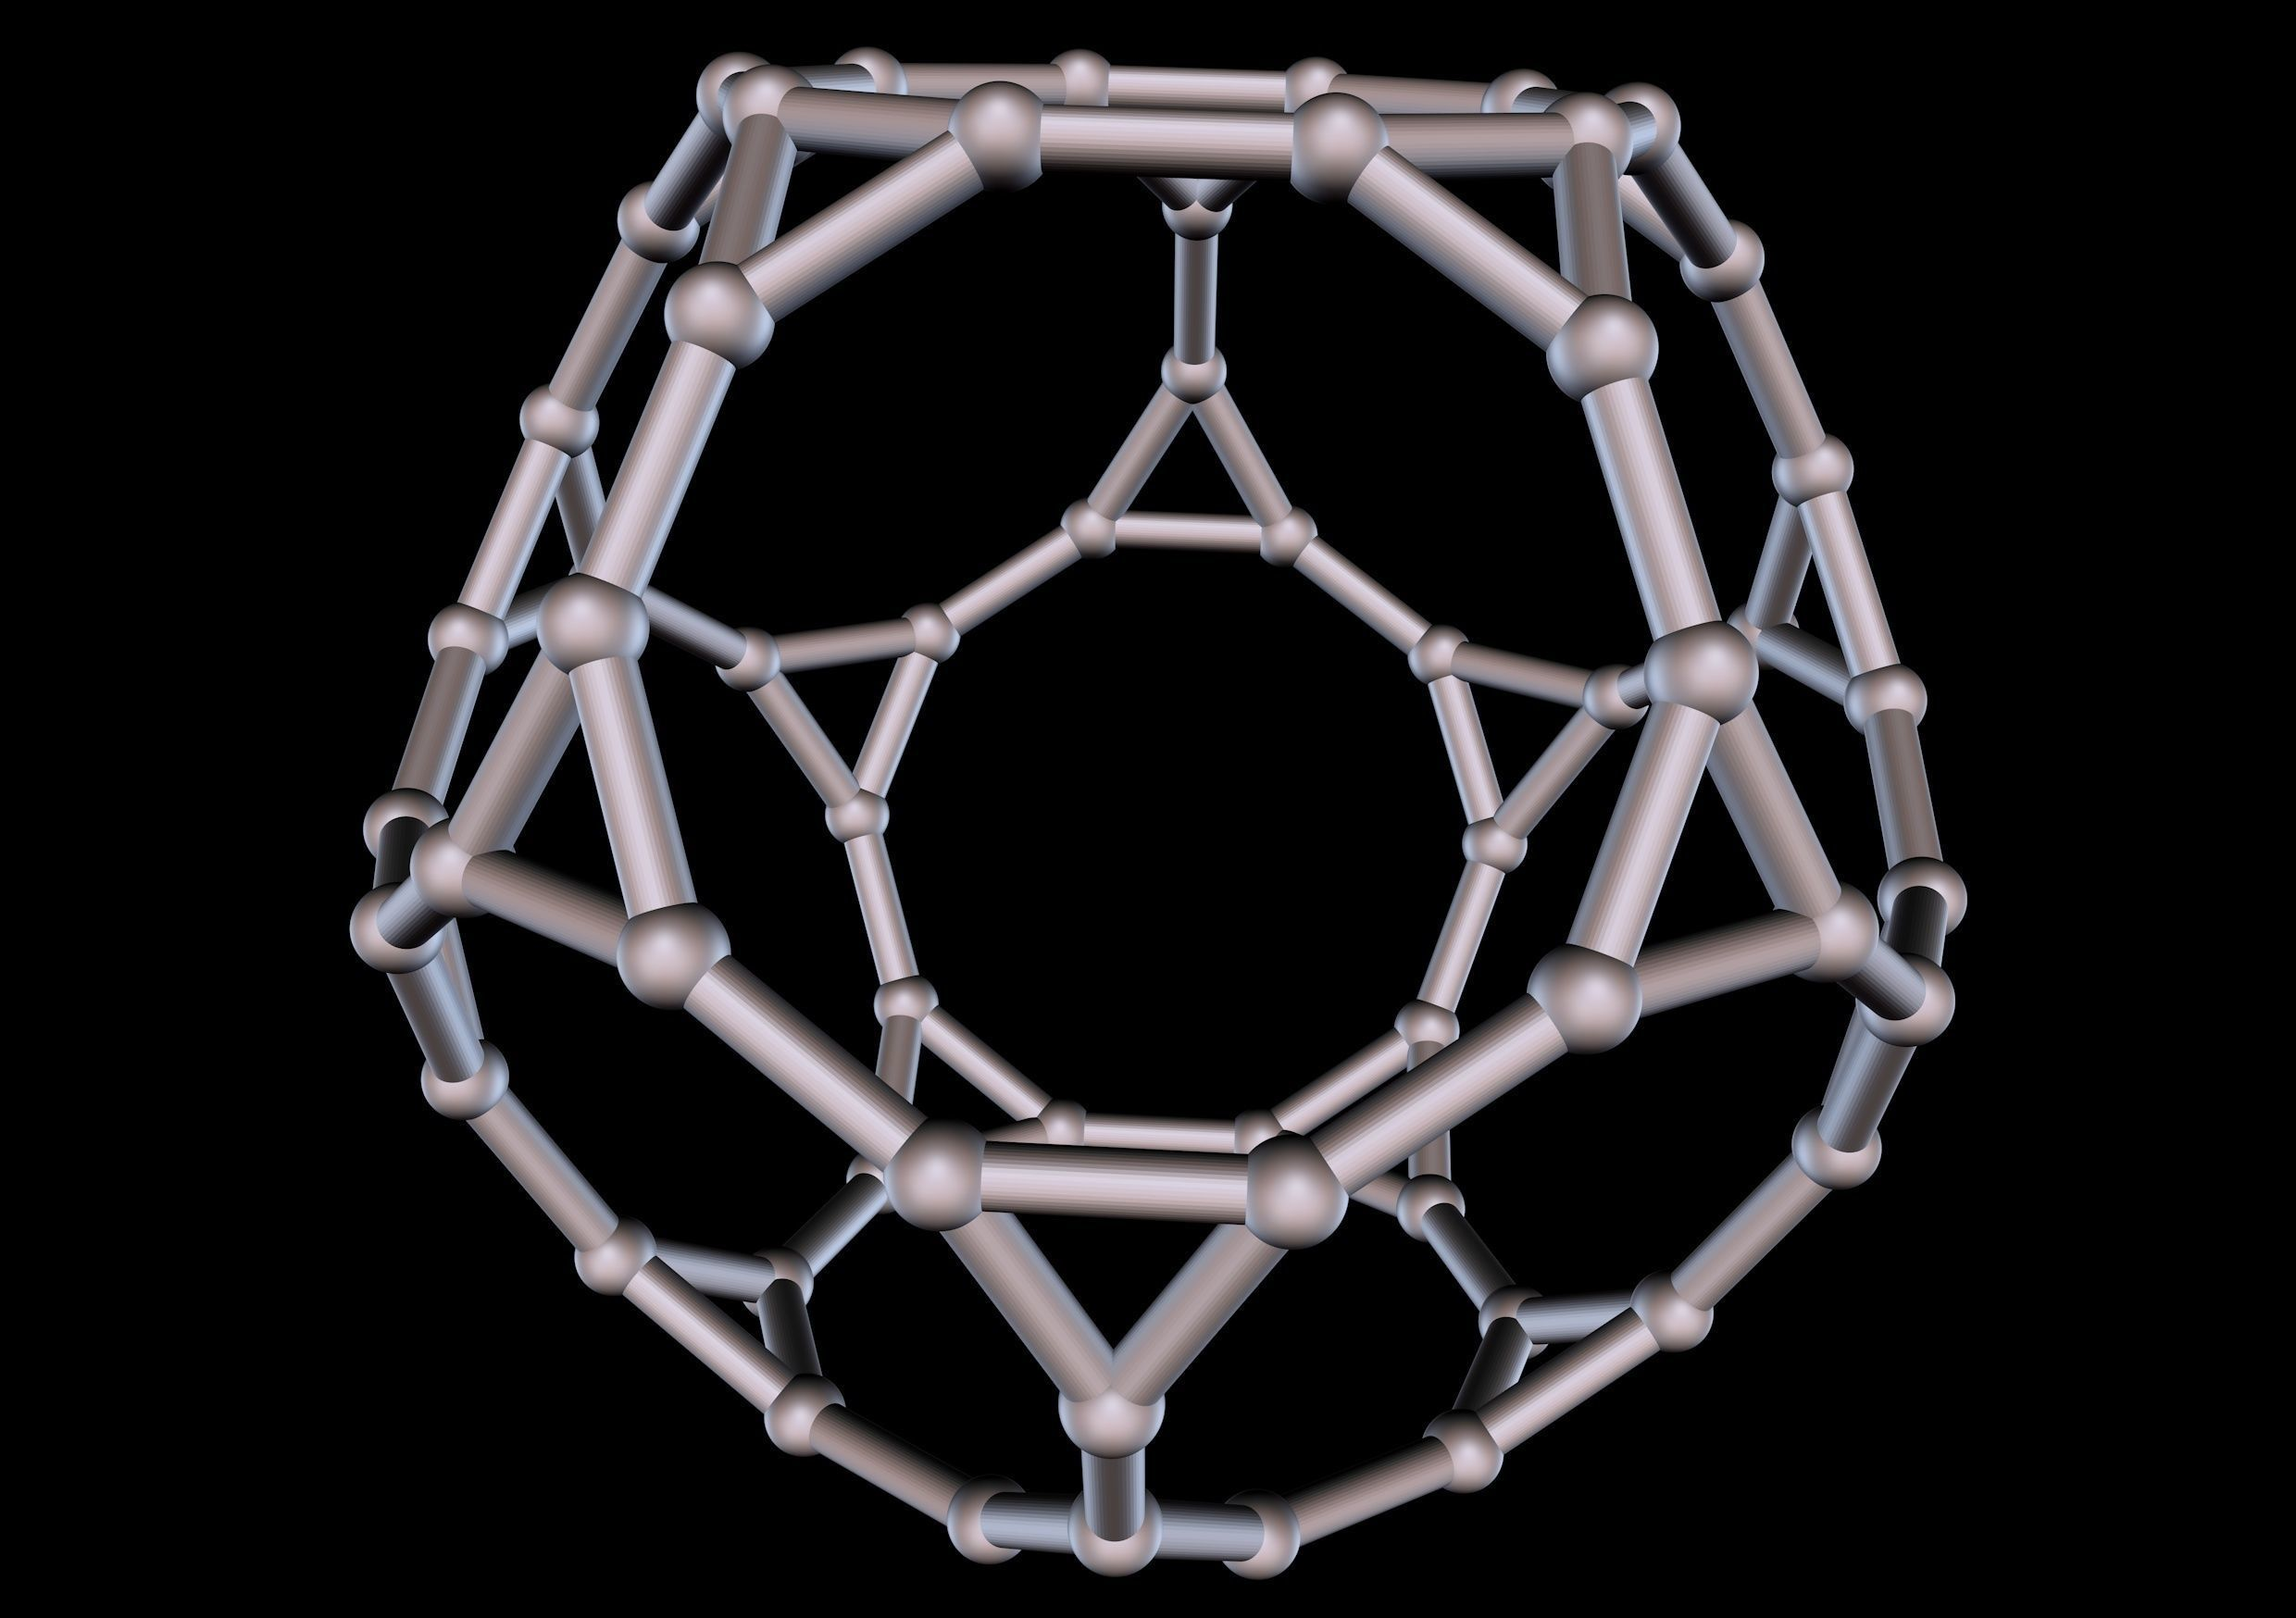 044 Mathart-Archimedean Solids-Truncated Dodecahedron 02-10cm